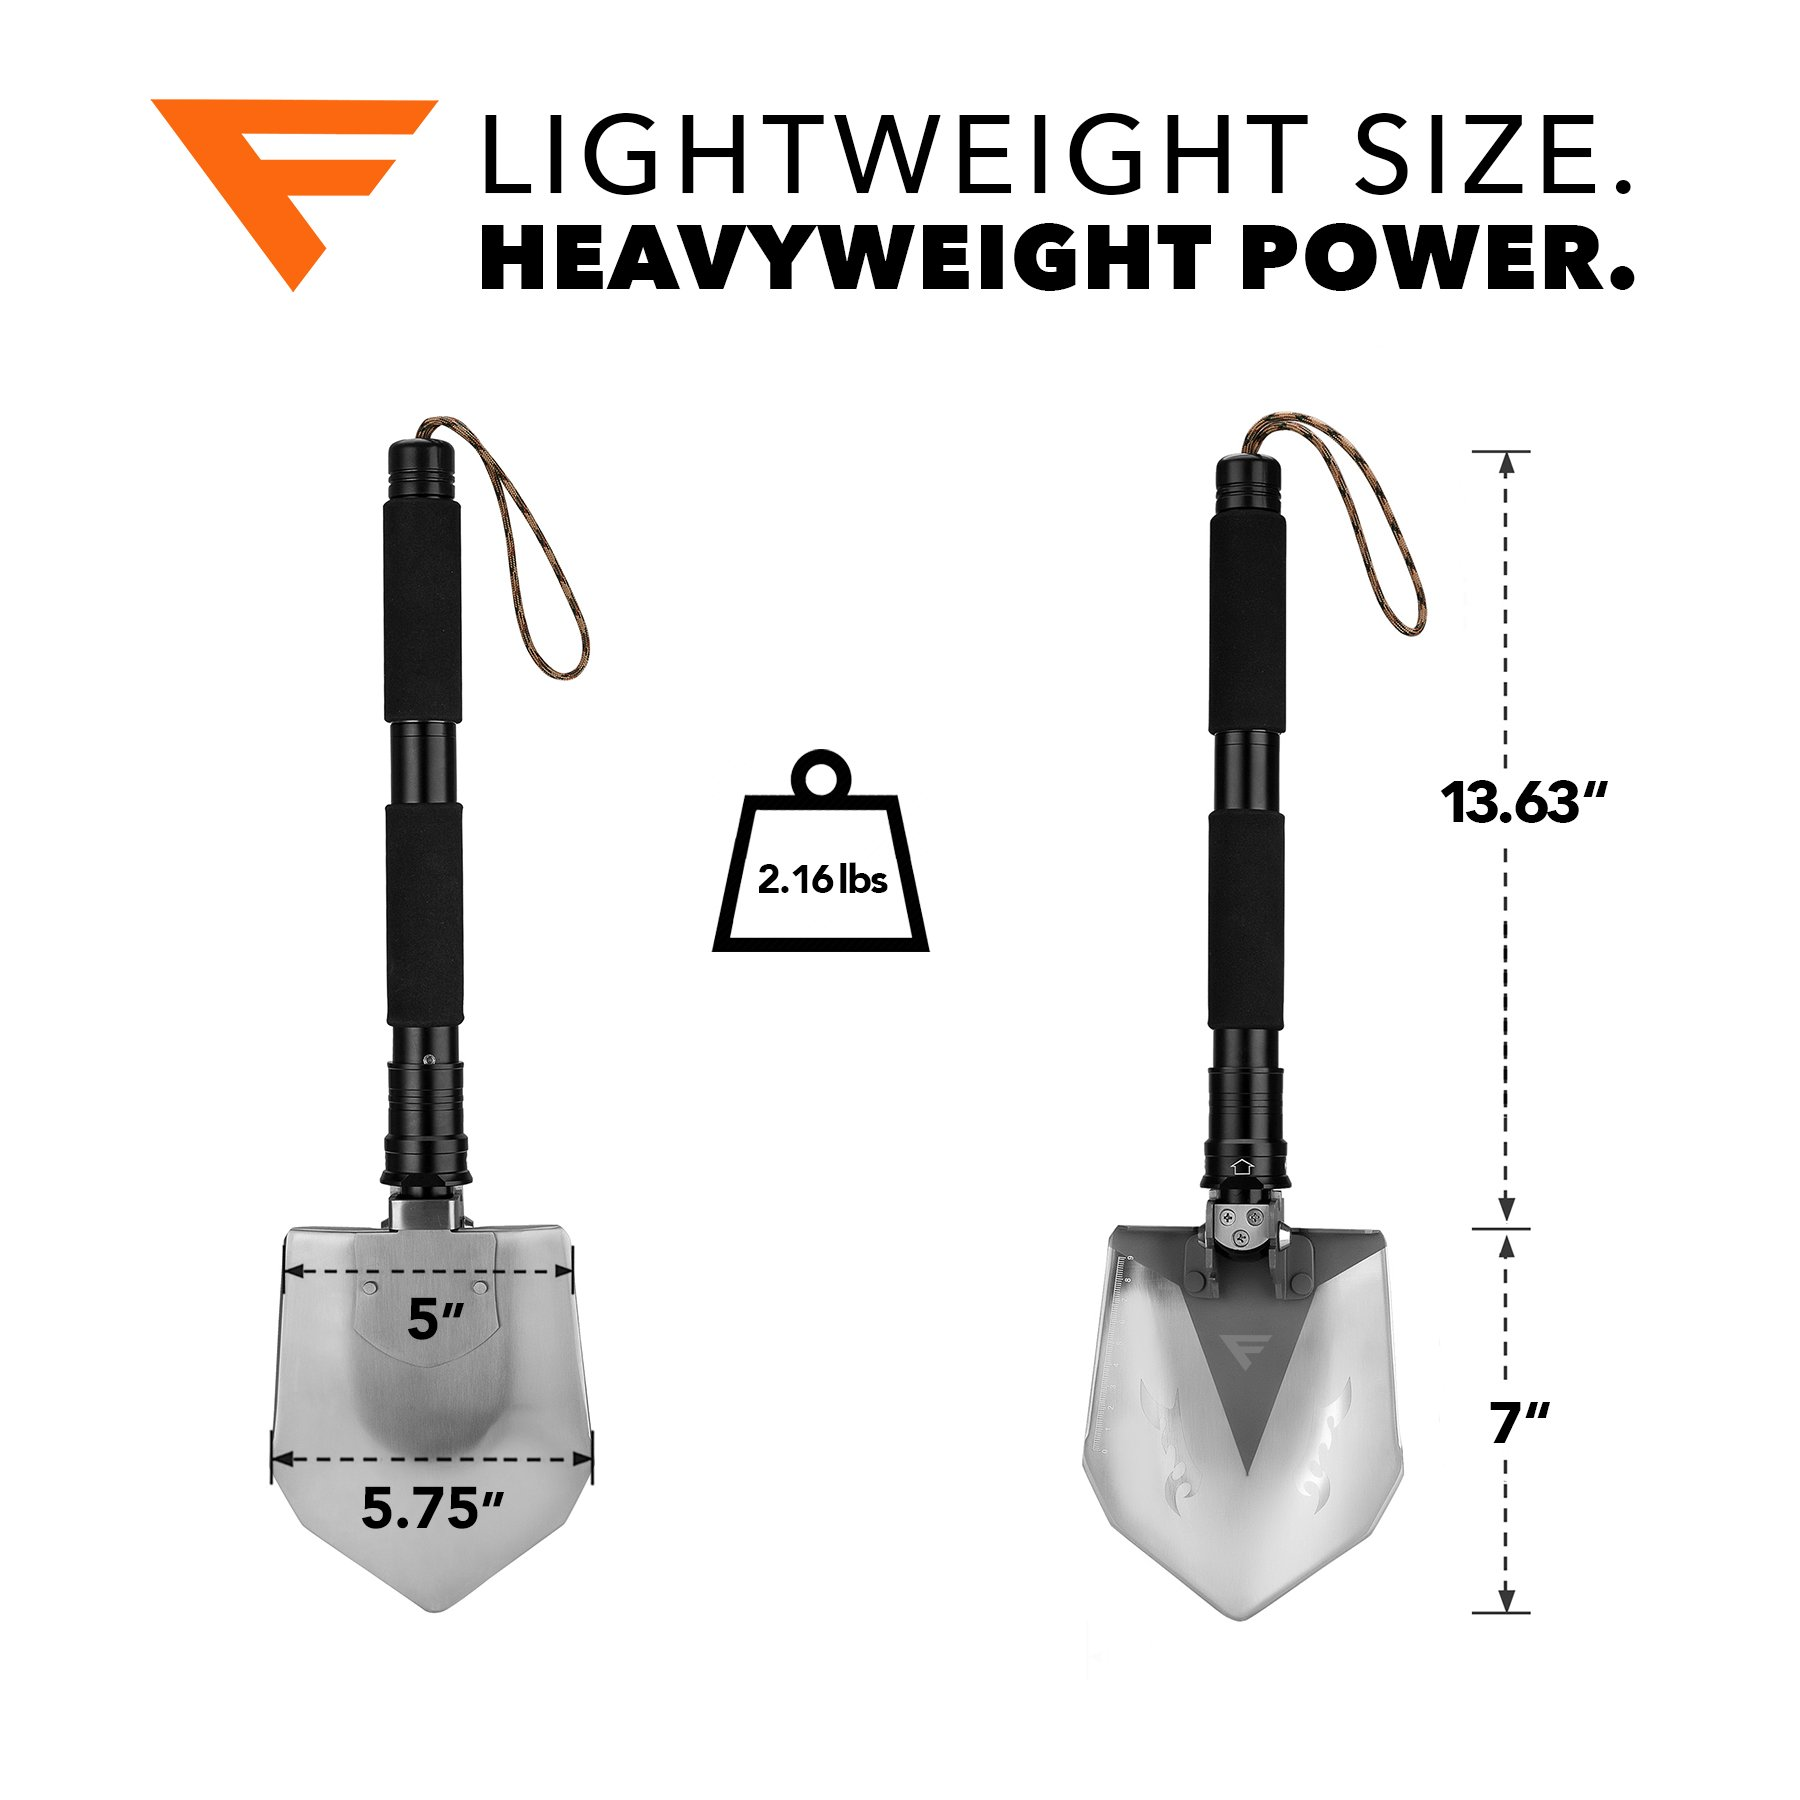 FiveJoy Military Folding Shovel Multitool (RS) - Compact Multi-Purpose Tool for Tasks Around Camp or to Keep in Vehicle for Emergency - Essential for Every Camper, RV Owner, Survivalist and Prepper by FiveJoy (Image #1)